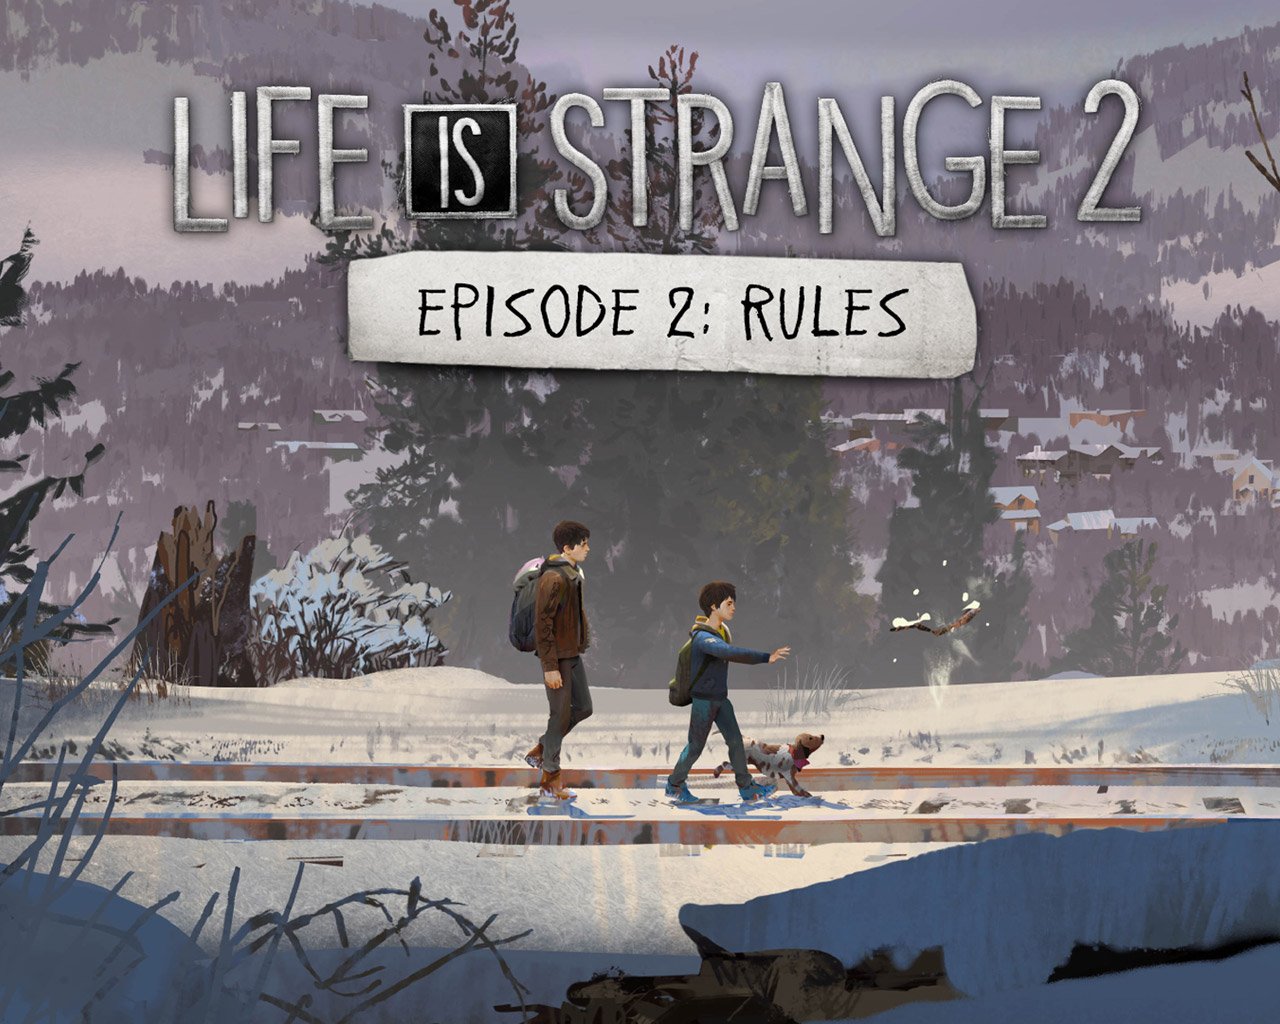 Free Life is Strange 2 Wallpaper in 1280x1024